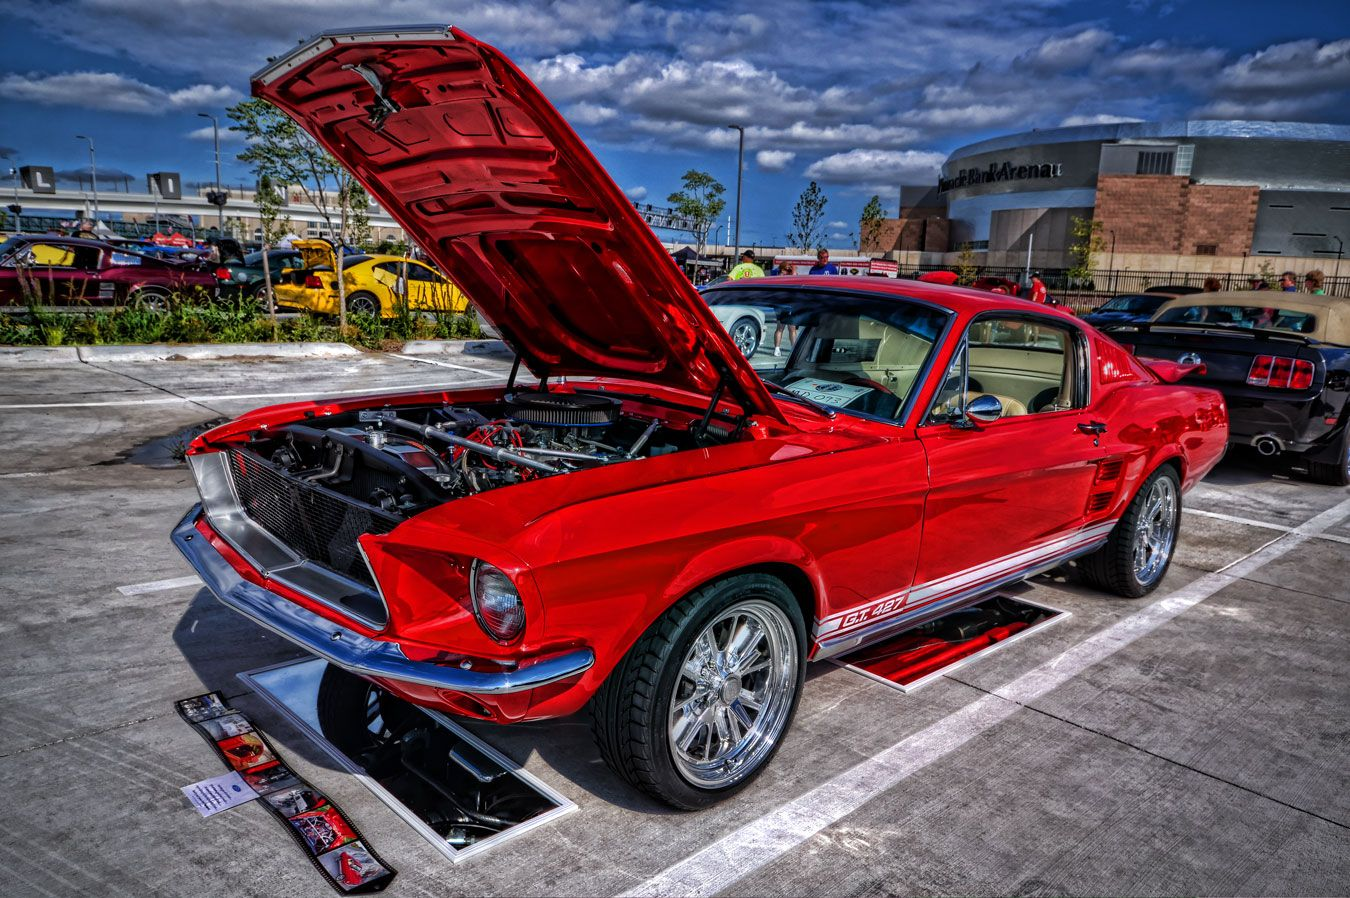 427 mustang auto photo art bmw mustang vehicles